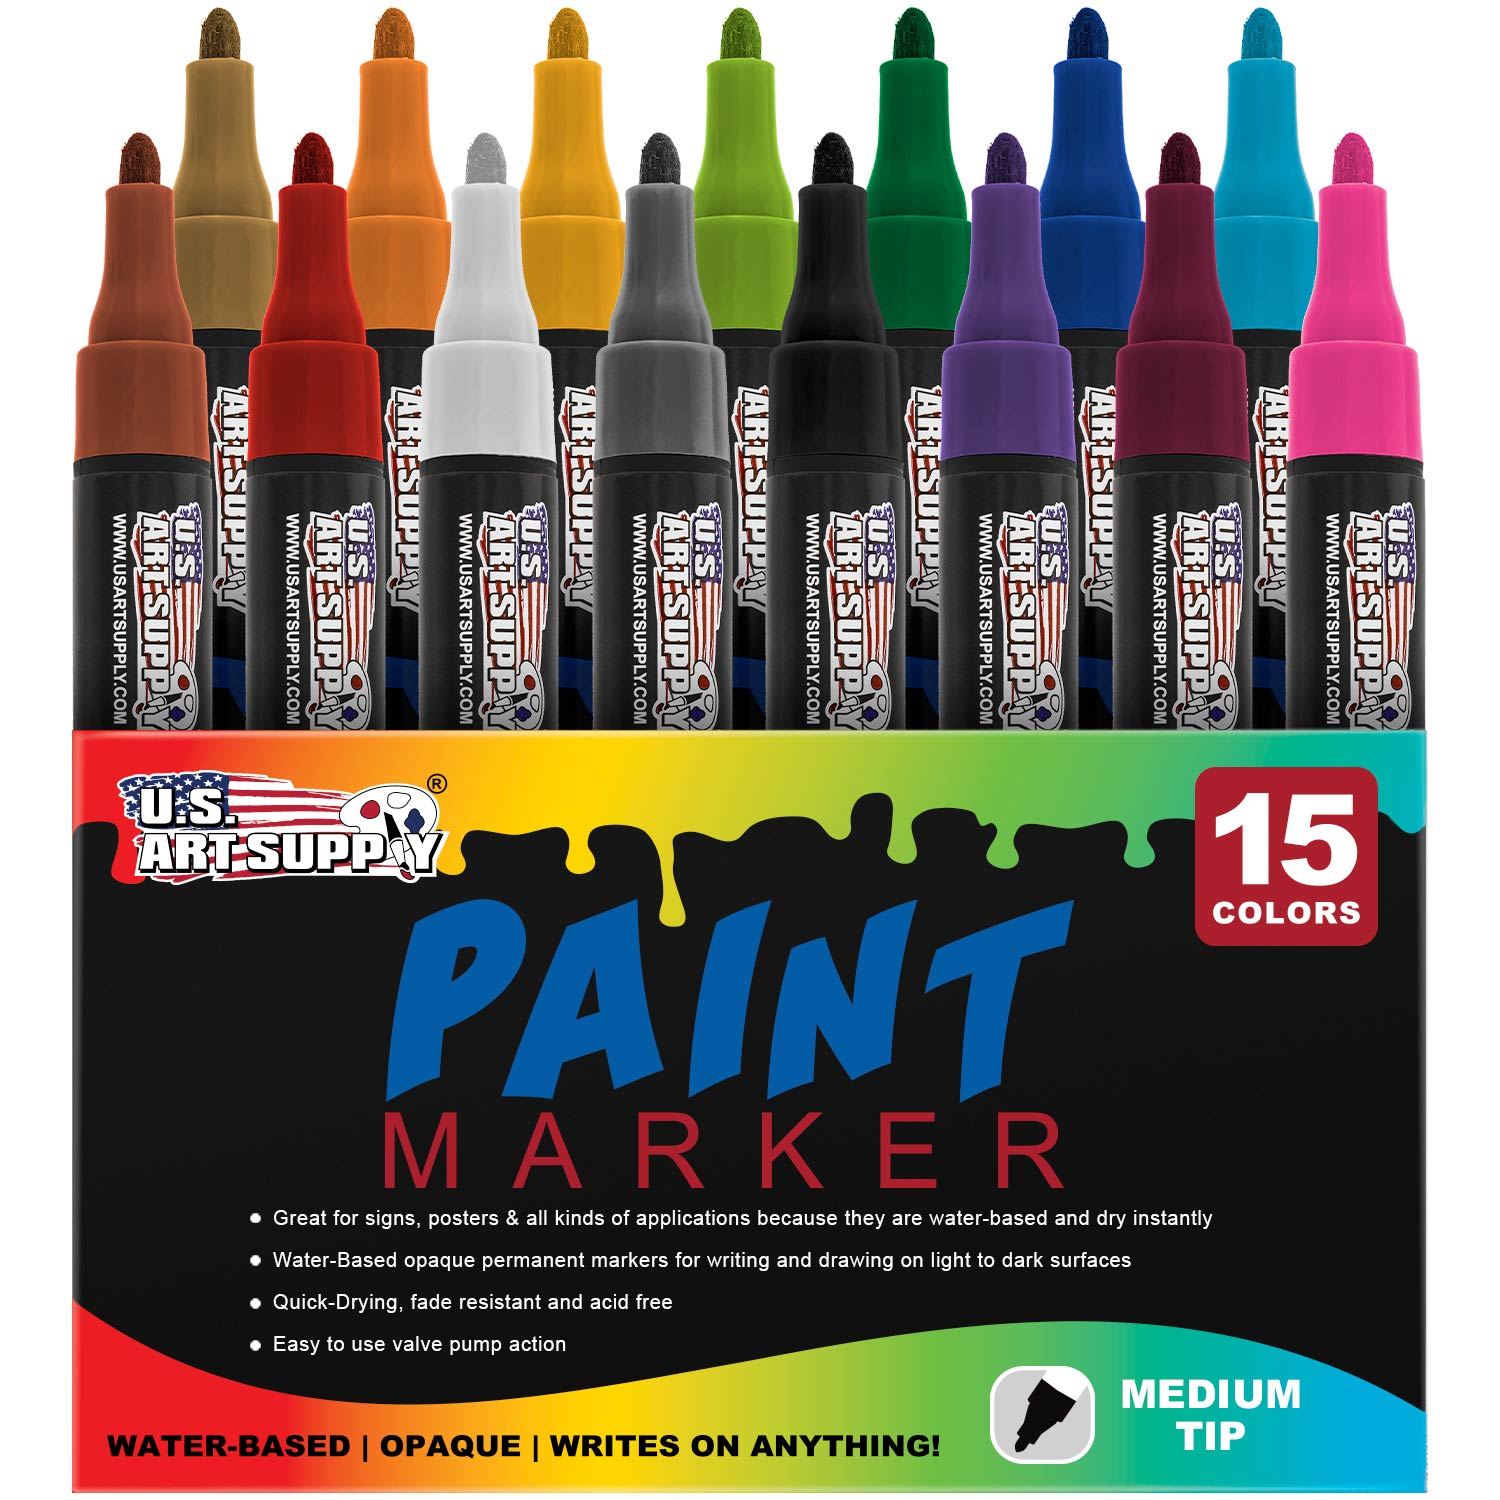 Water Based Premium Paint Pen Markers from U.S. Art Supply - 15 Color Set of Medium Point Tips - Permanent Ink